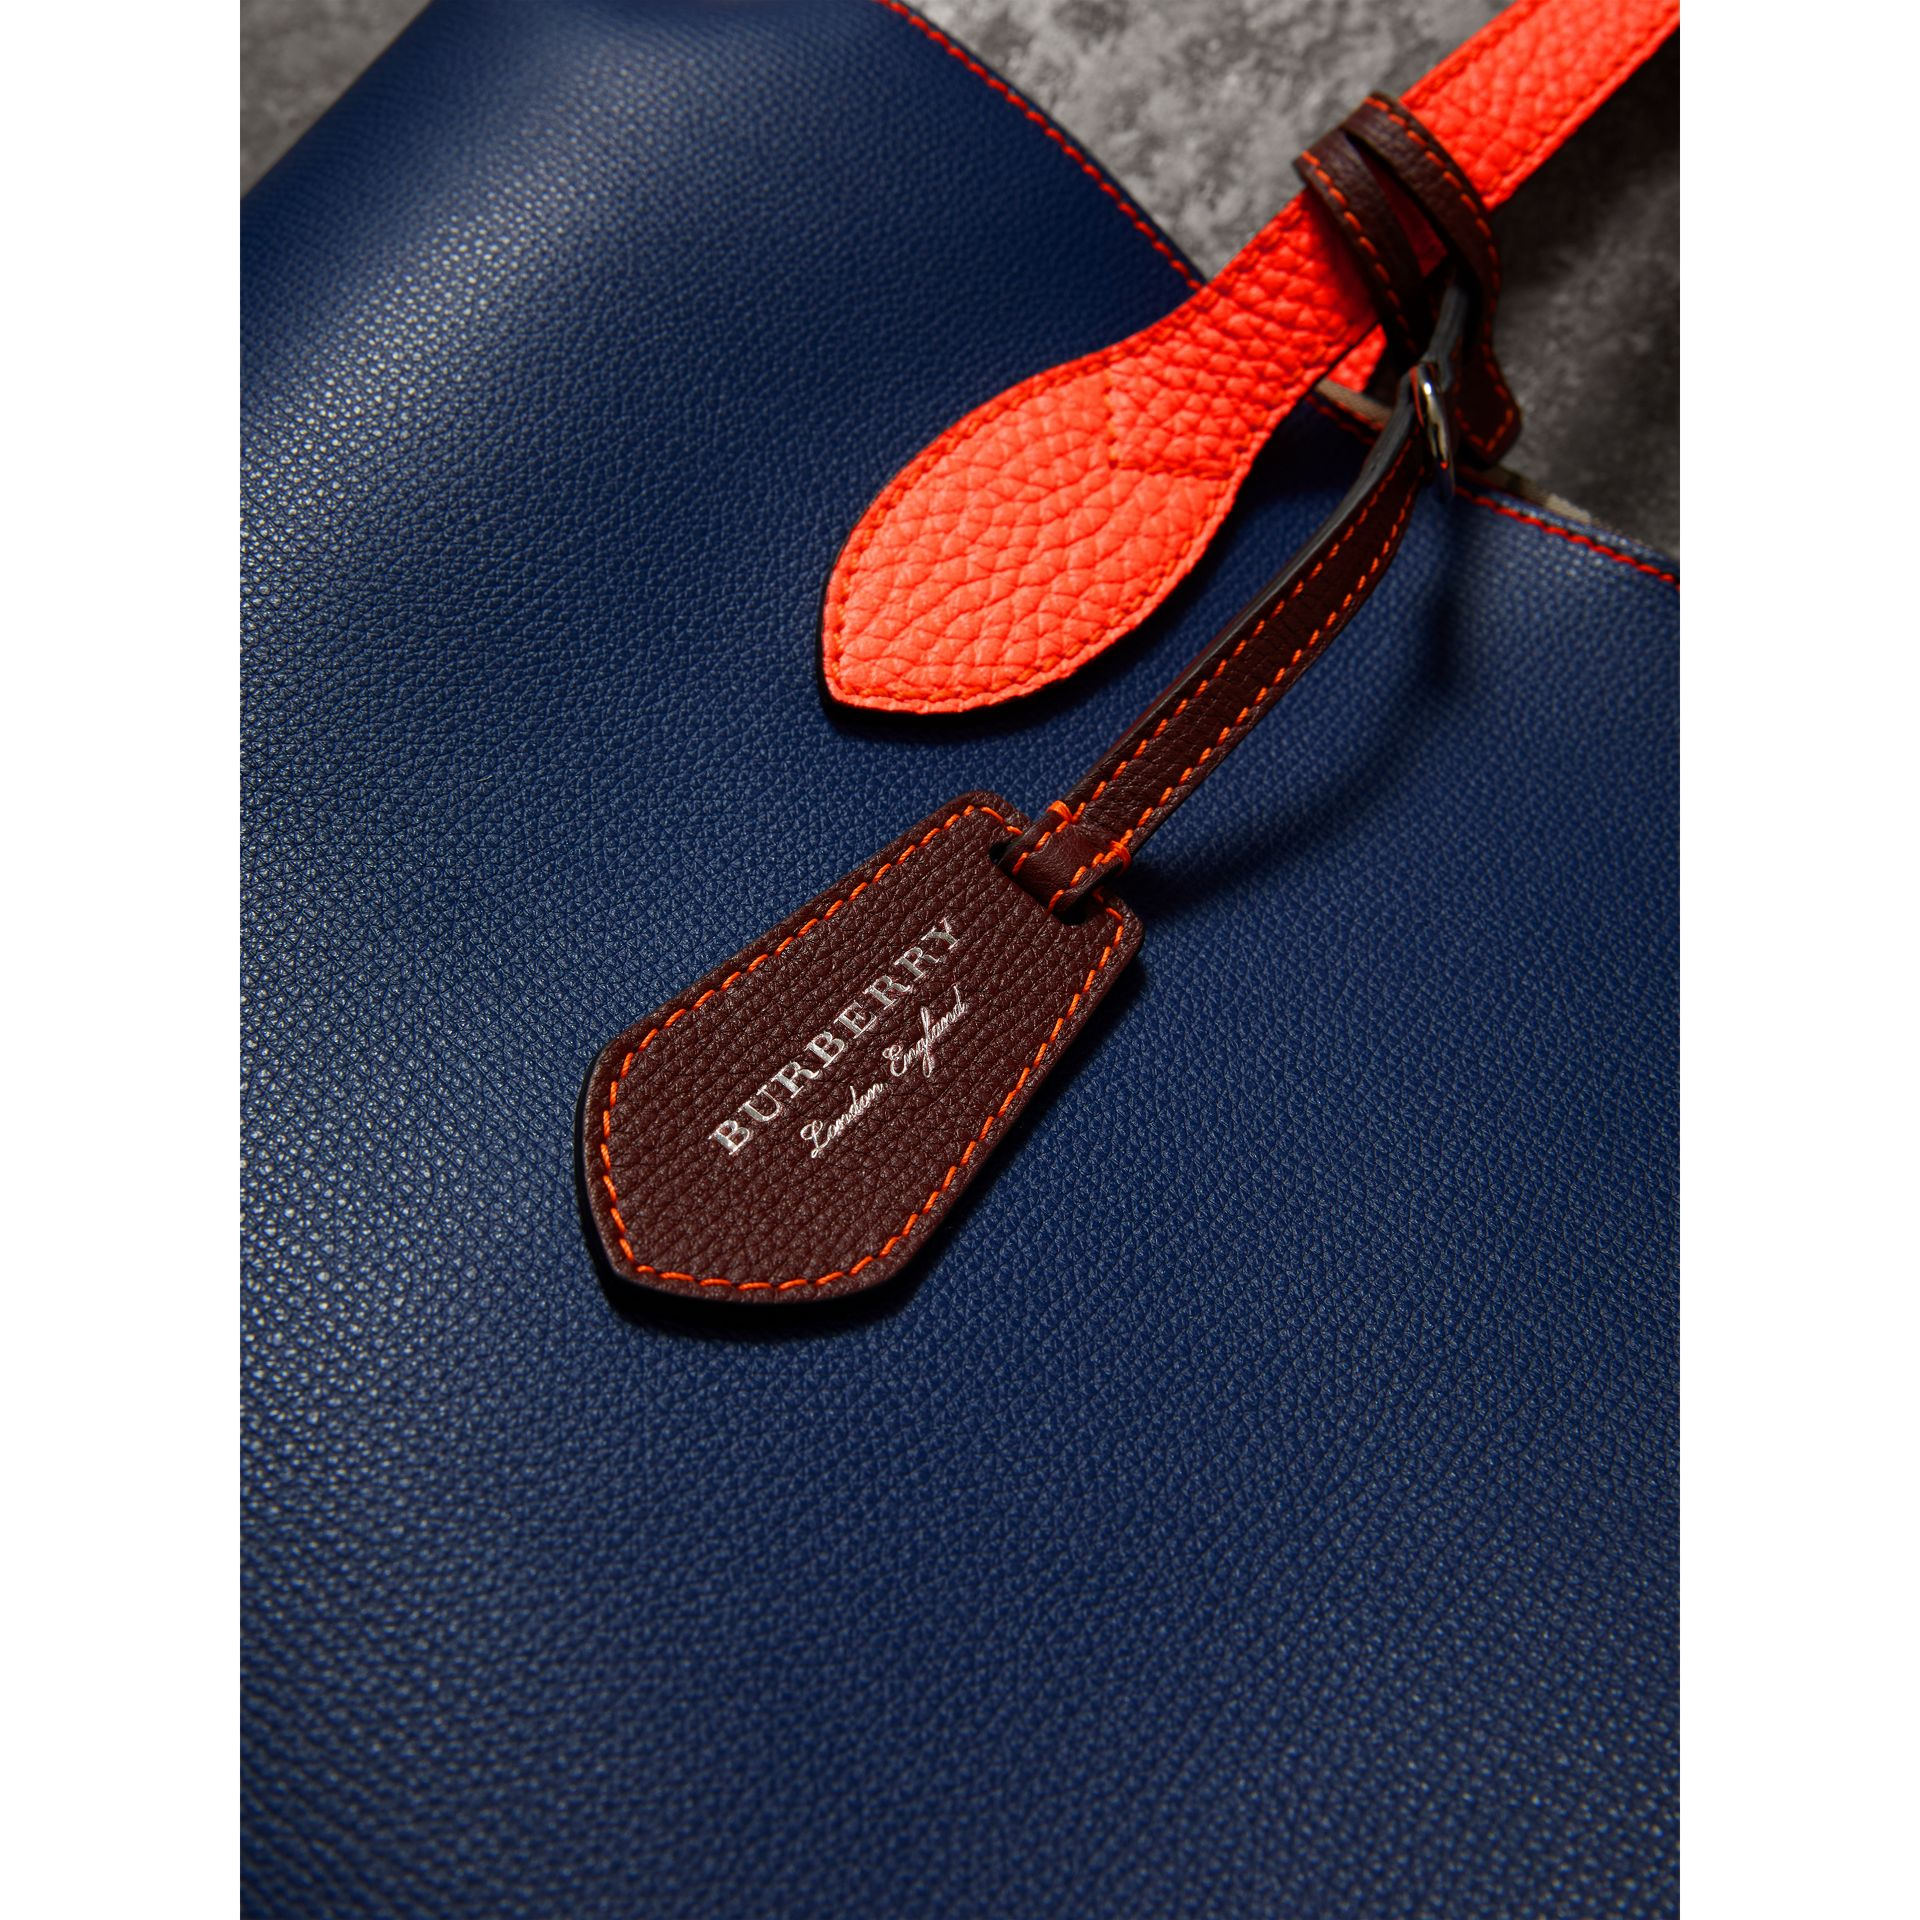 Medium Two-tone Coated Leather Tote in Dark Ultramarine | Burberry - gallery image 1